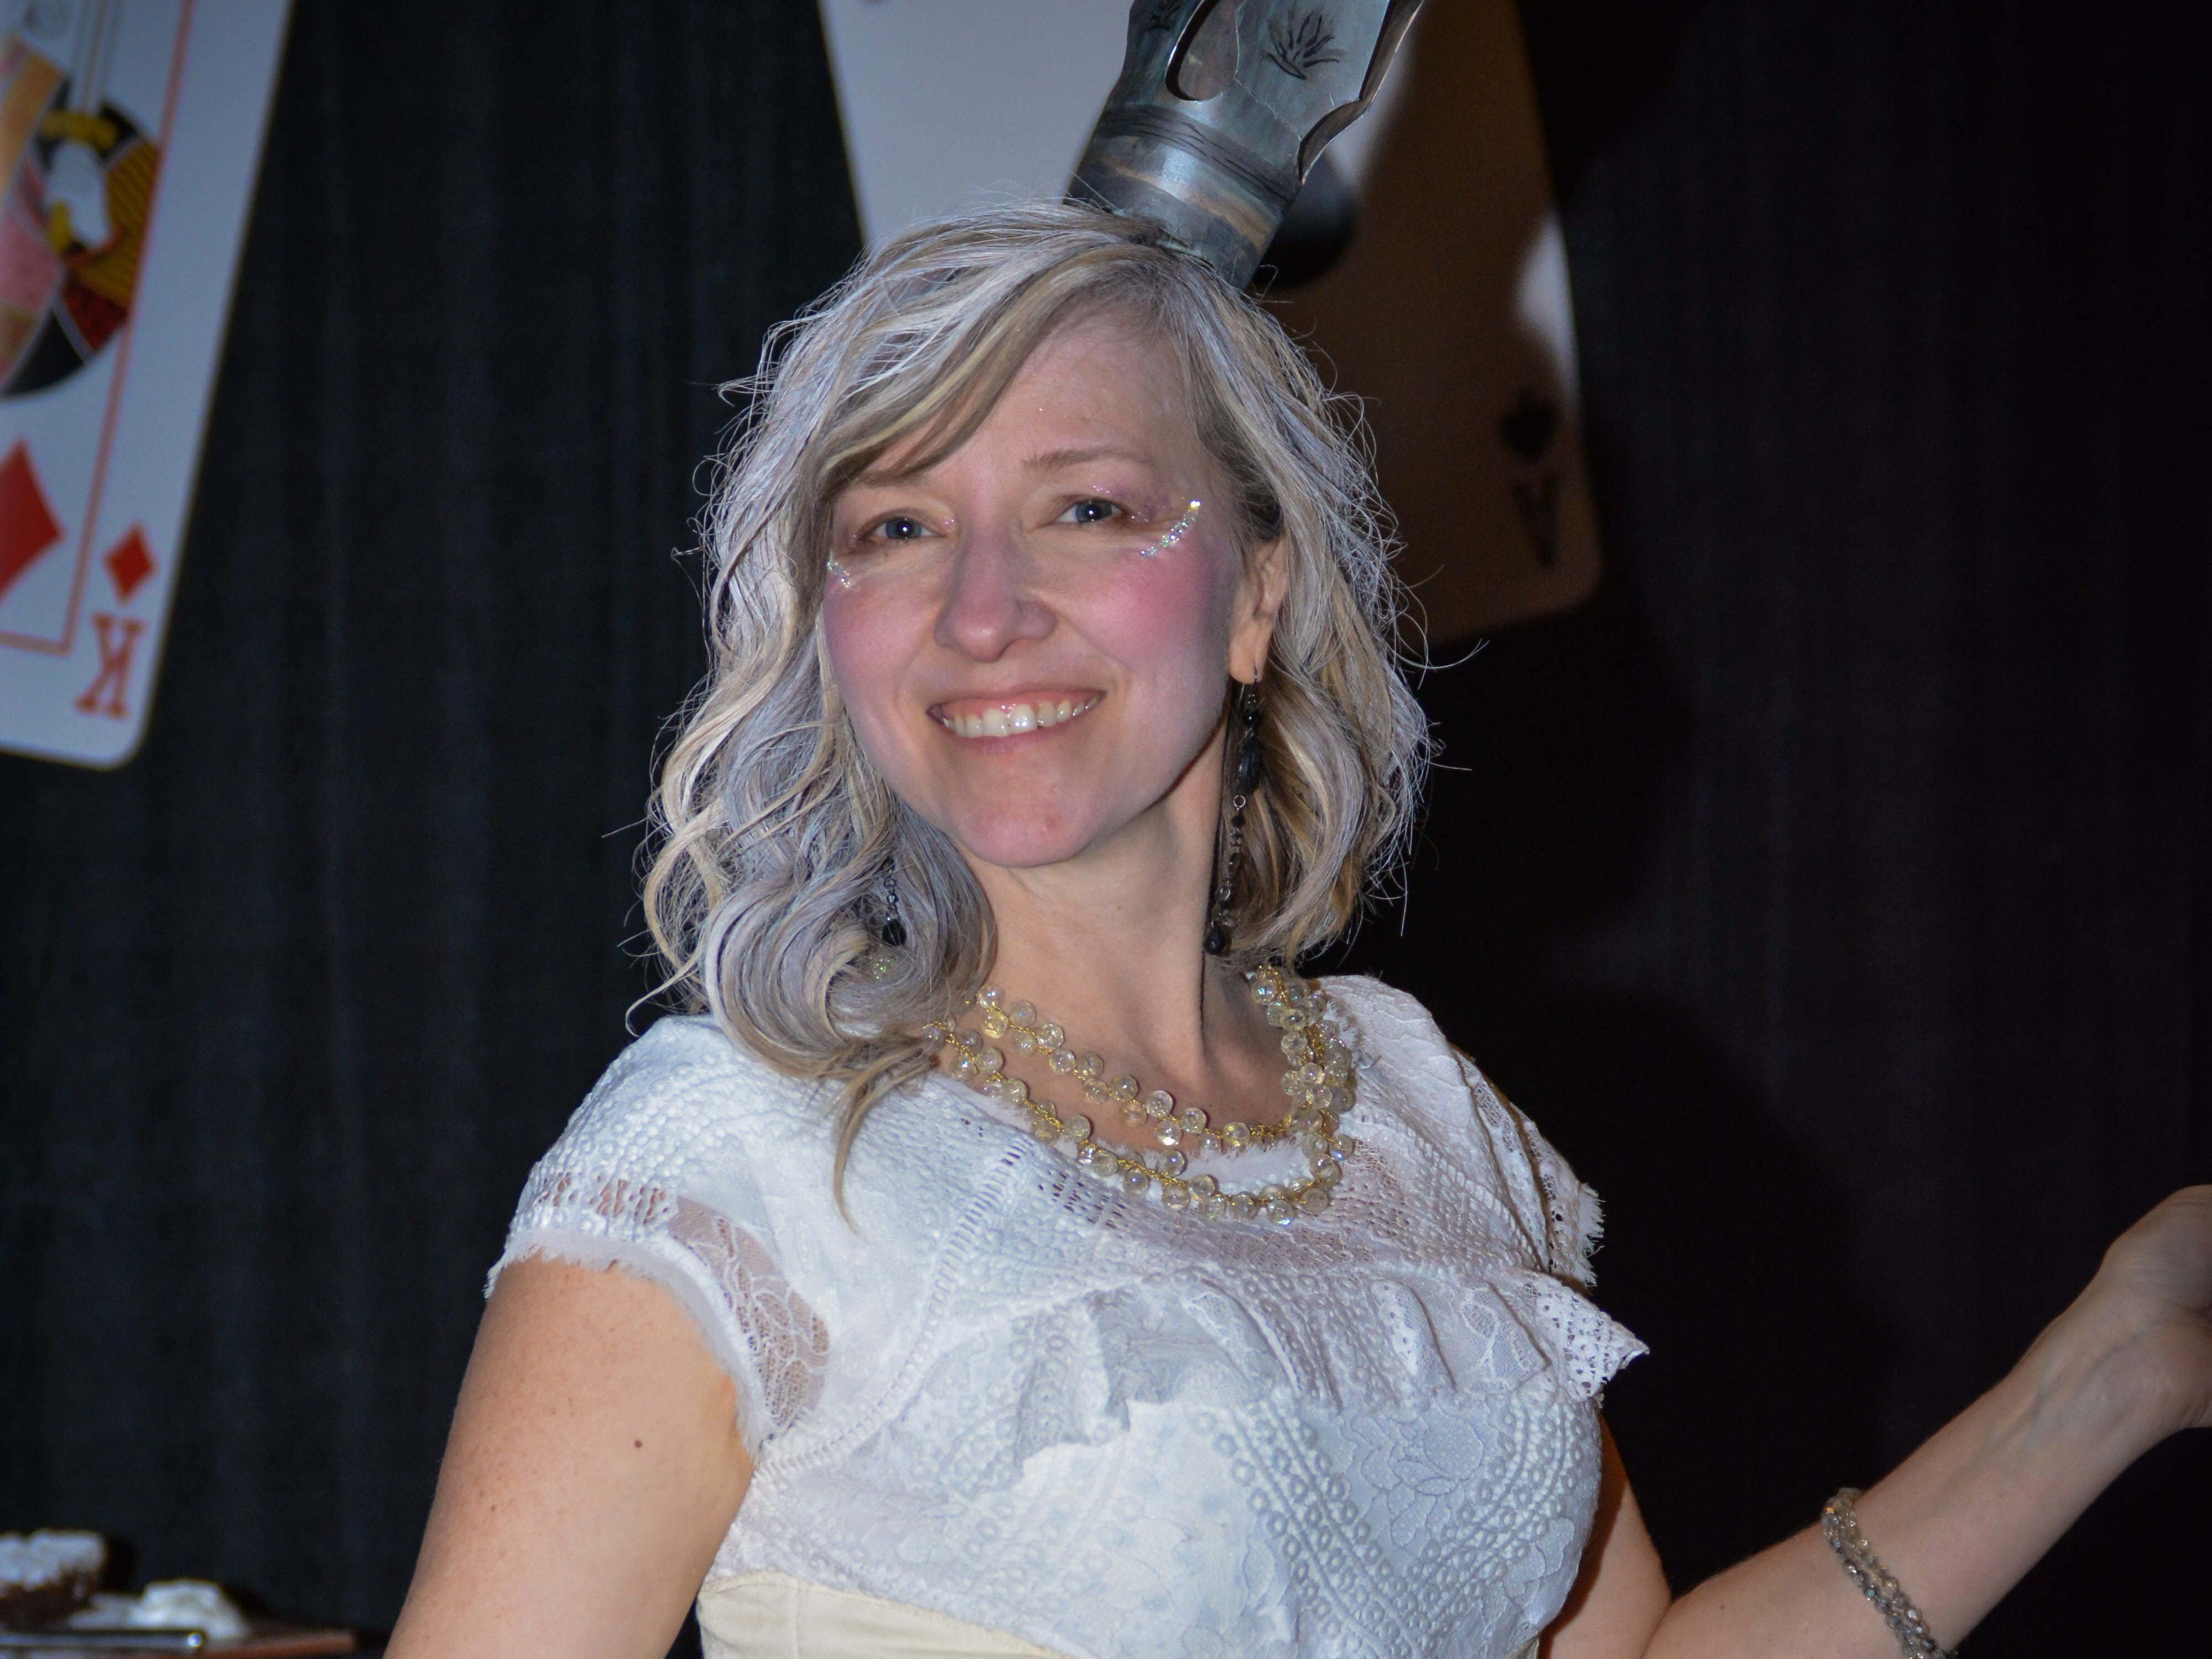 """Jessica Pavlocovich pulled out all the stops with her White Queen costume at the Minds in Motion Museum """"A Wonderland Adventure Gala"""" on Nov. 3, 2018, held at the Wicomico Youth & Civic Center in Salisbury, Maryland."""